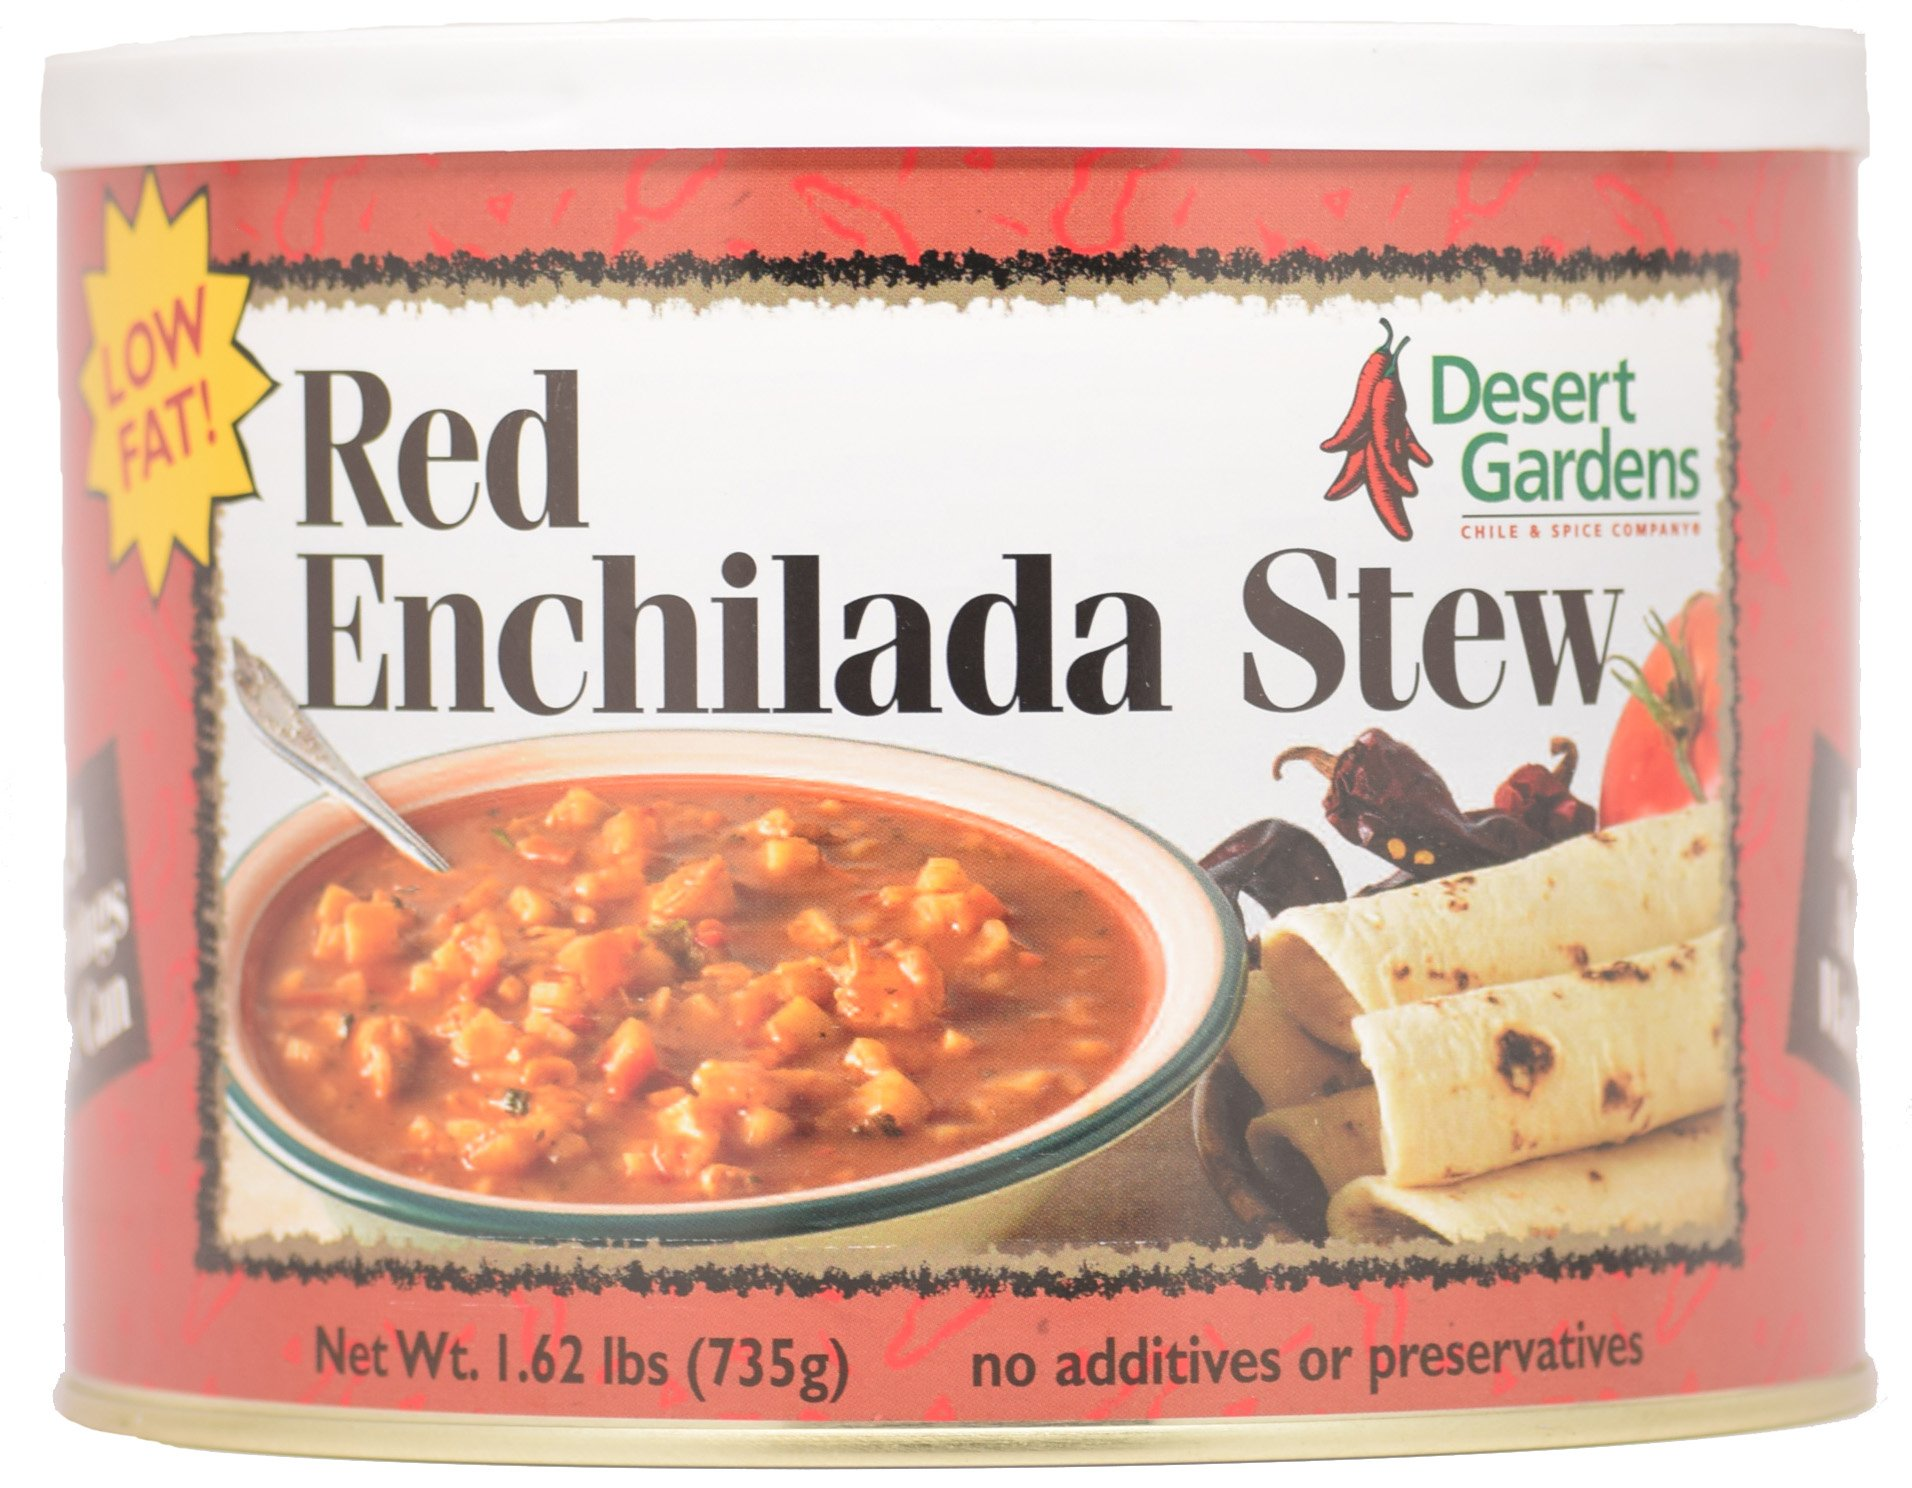 Desert Gardens Red Enchilada Stew - 24 Serving Canister